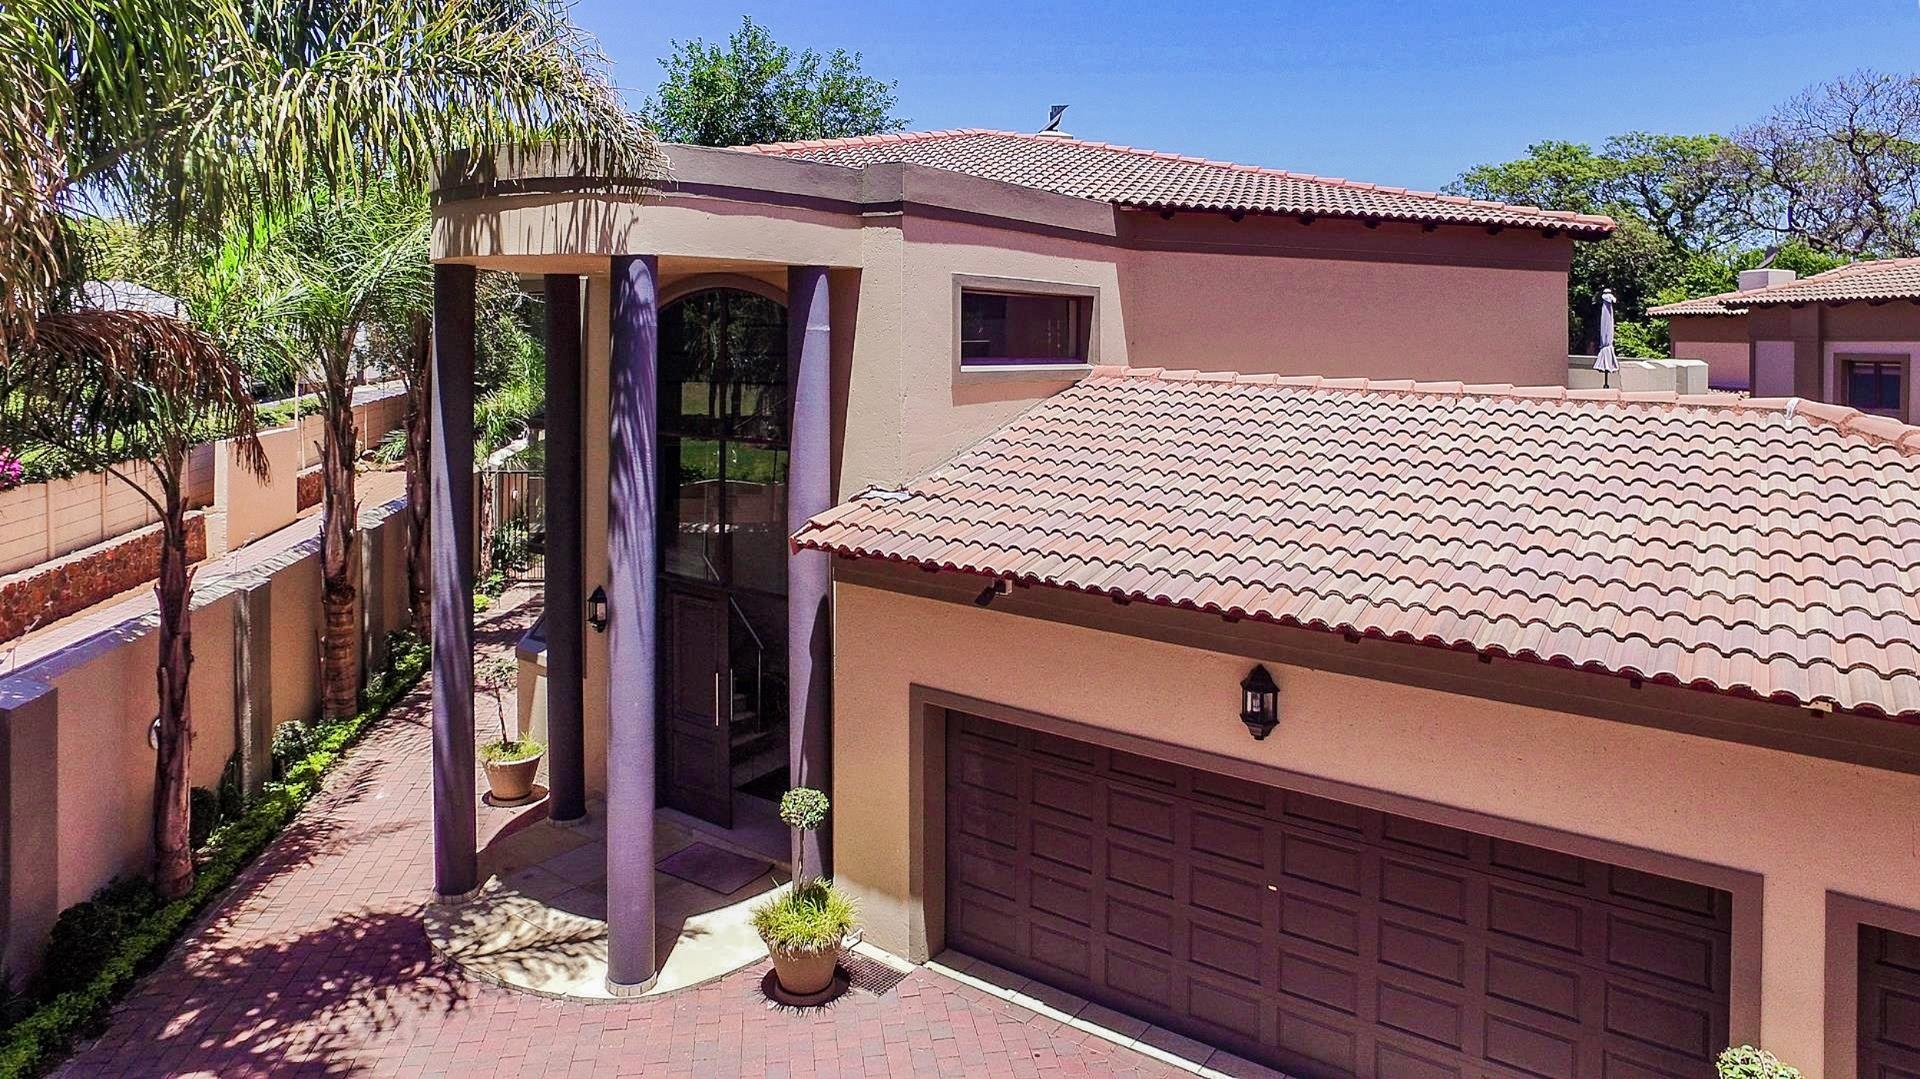 Johannesburg, Waverley Property  | Houses For Sale Waverley, Waverley, House 4 bedrooms property for sale Price:6,800,000